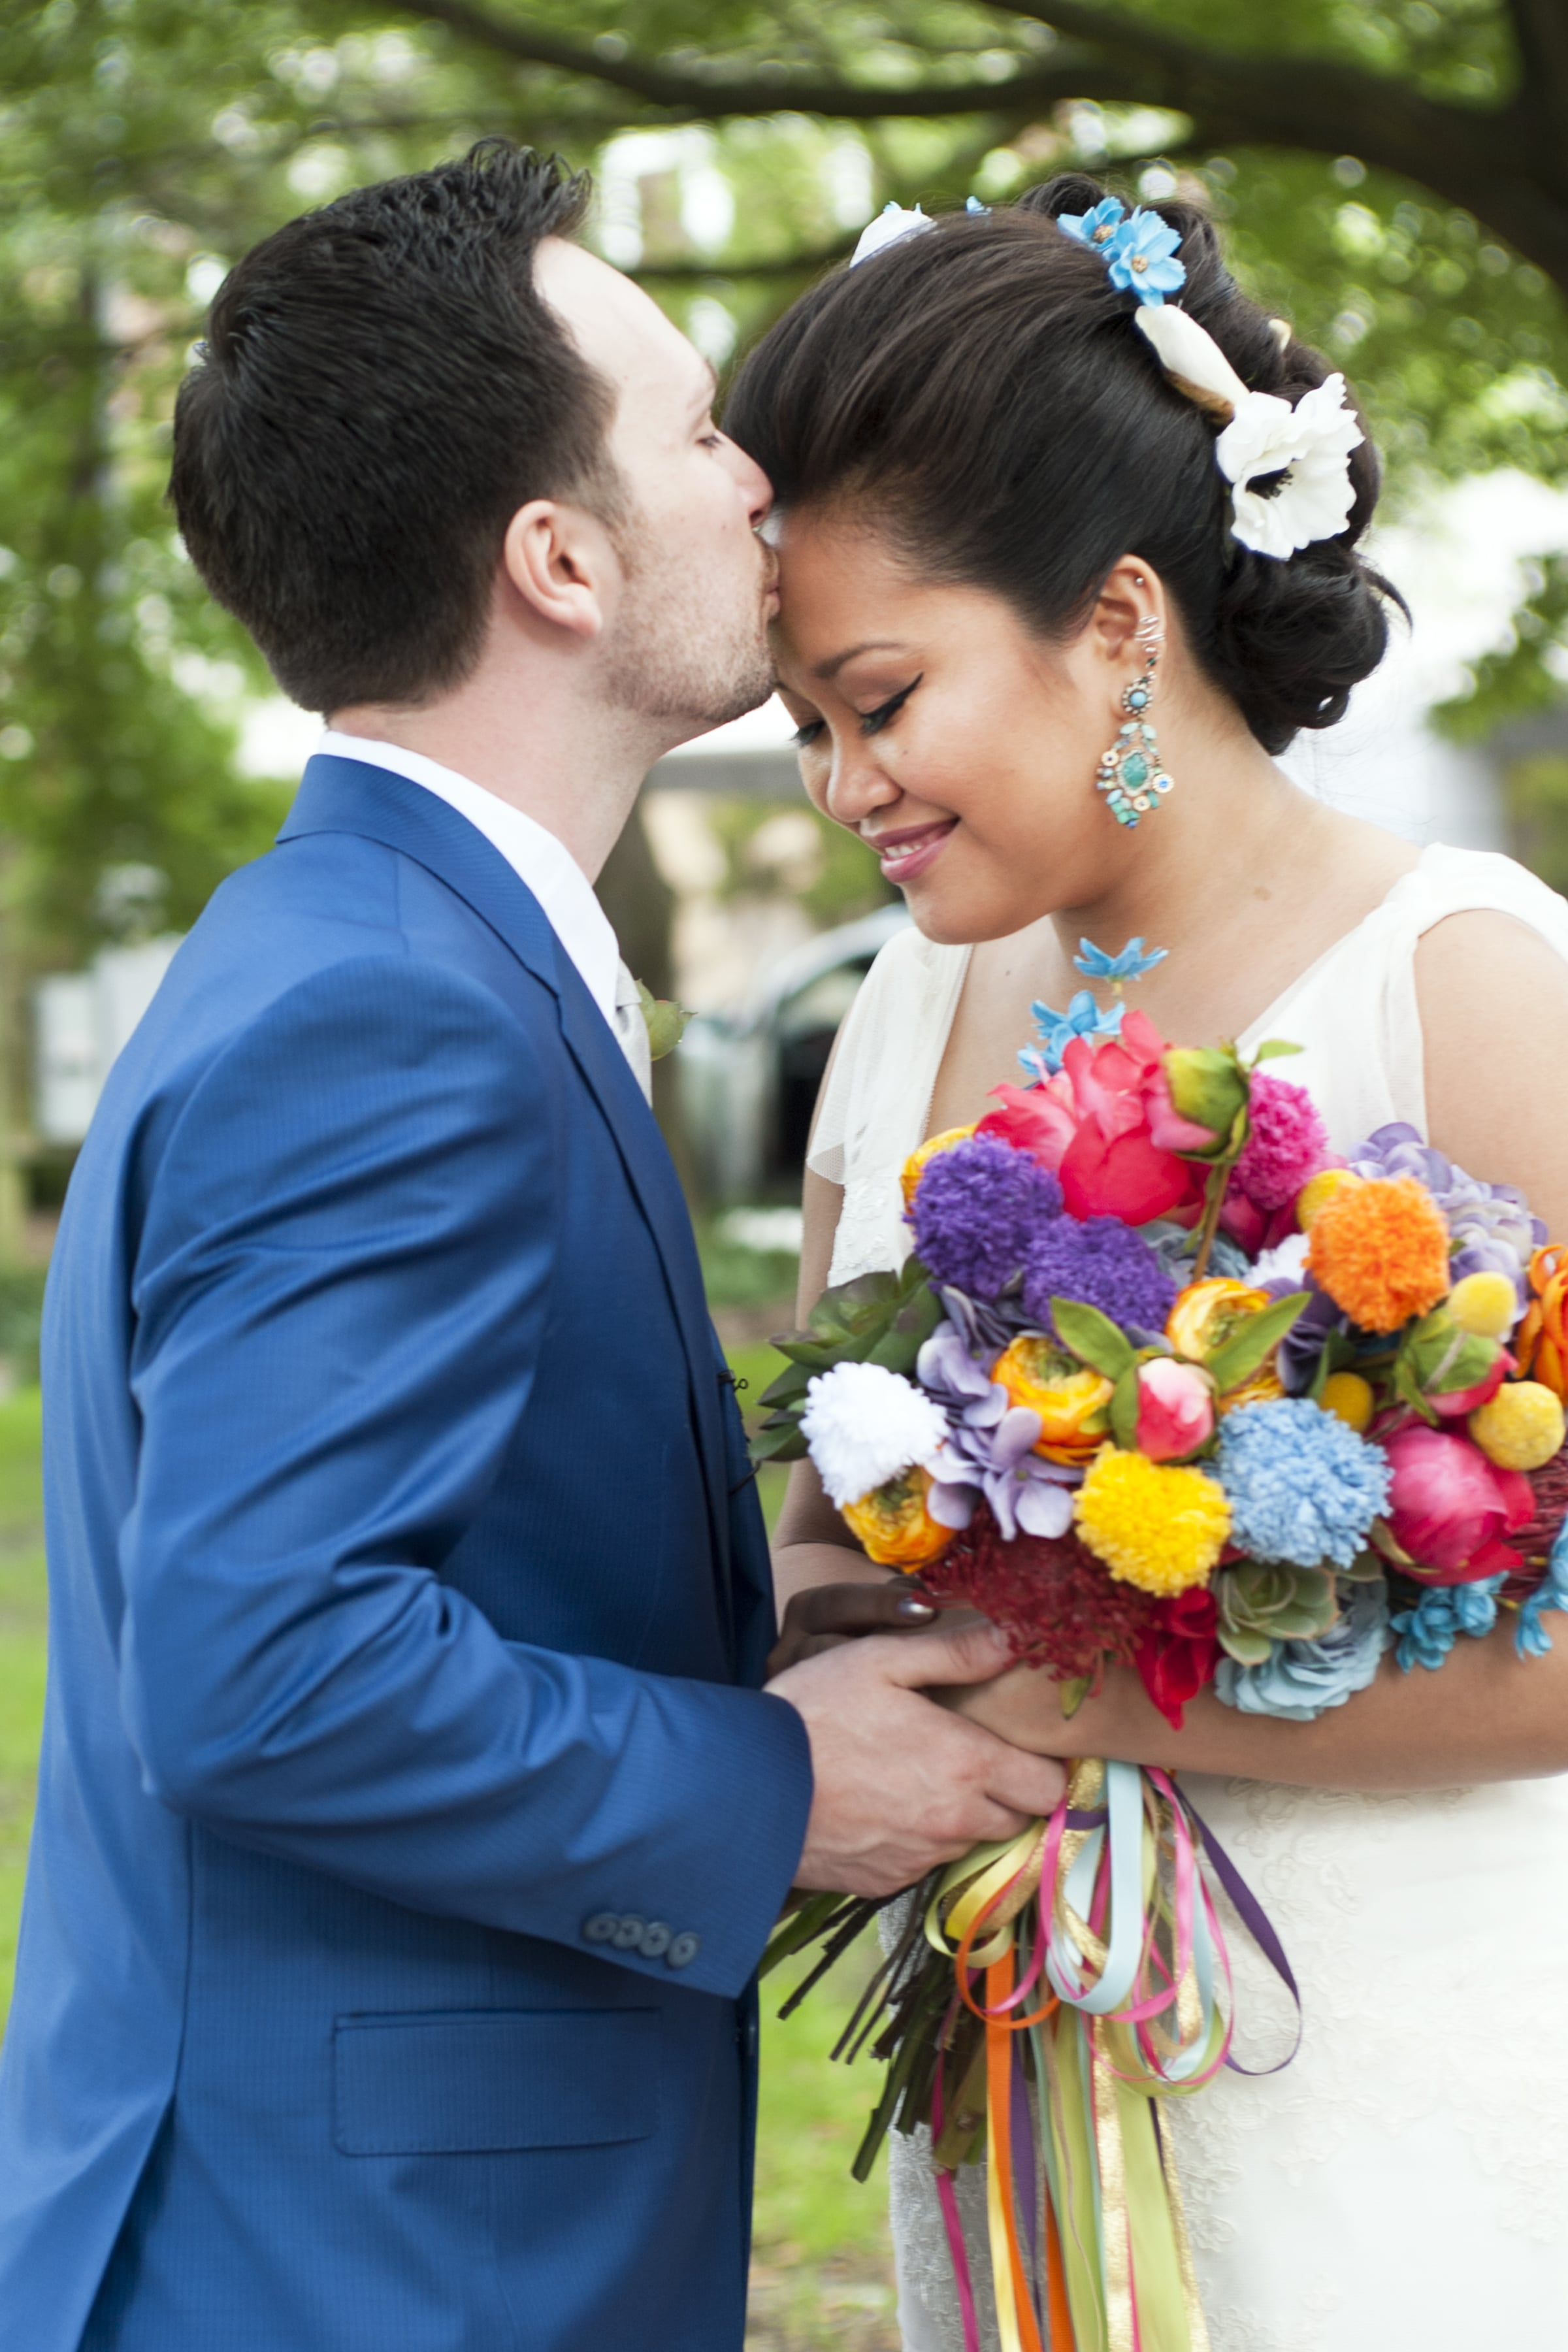 jeff-and-mollie-take-pictures-ivory-and-beau-wedding-planning-ivory-and-beau-bridal-boutique-old-fort-jackson-wedding-colorful-wedding-savannah-wedding-planner-savannah-weddings-michelle-and-johnny-wedding-savannah-weddings-indie-wedding-12.jpg